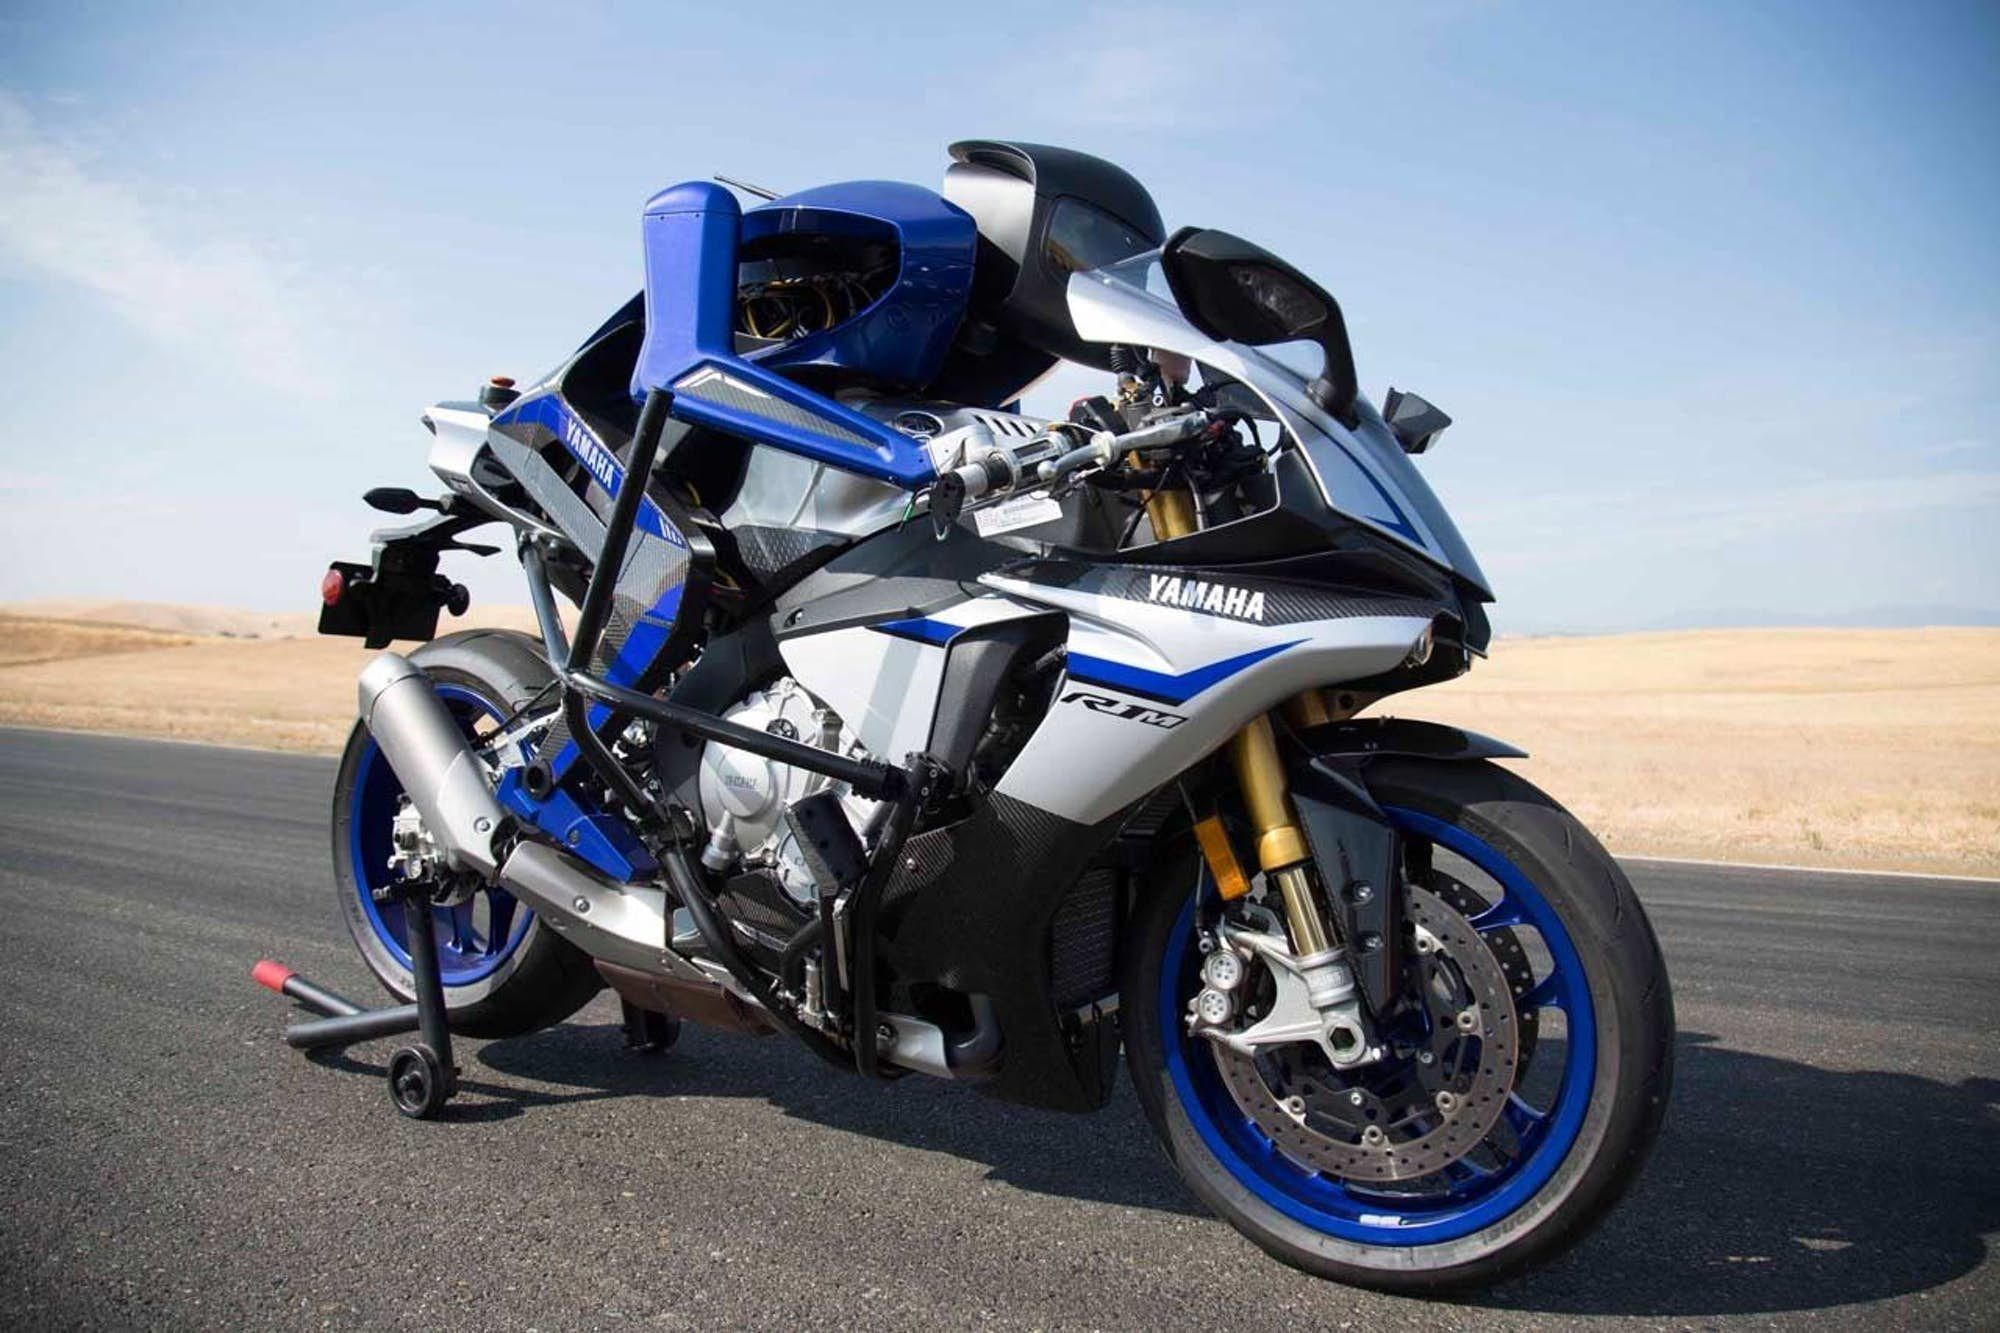 Yamaha Yzf R1 2020 Wallpapers Top Free Yamaha Yzf R1 2020 Backgrounds Wallpaperaccess